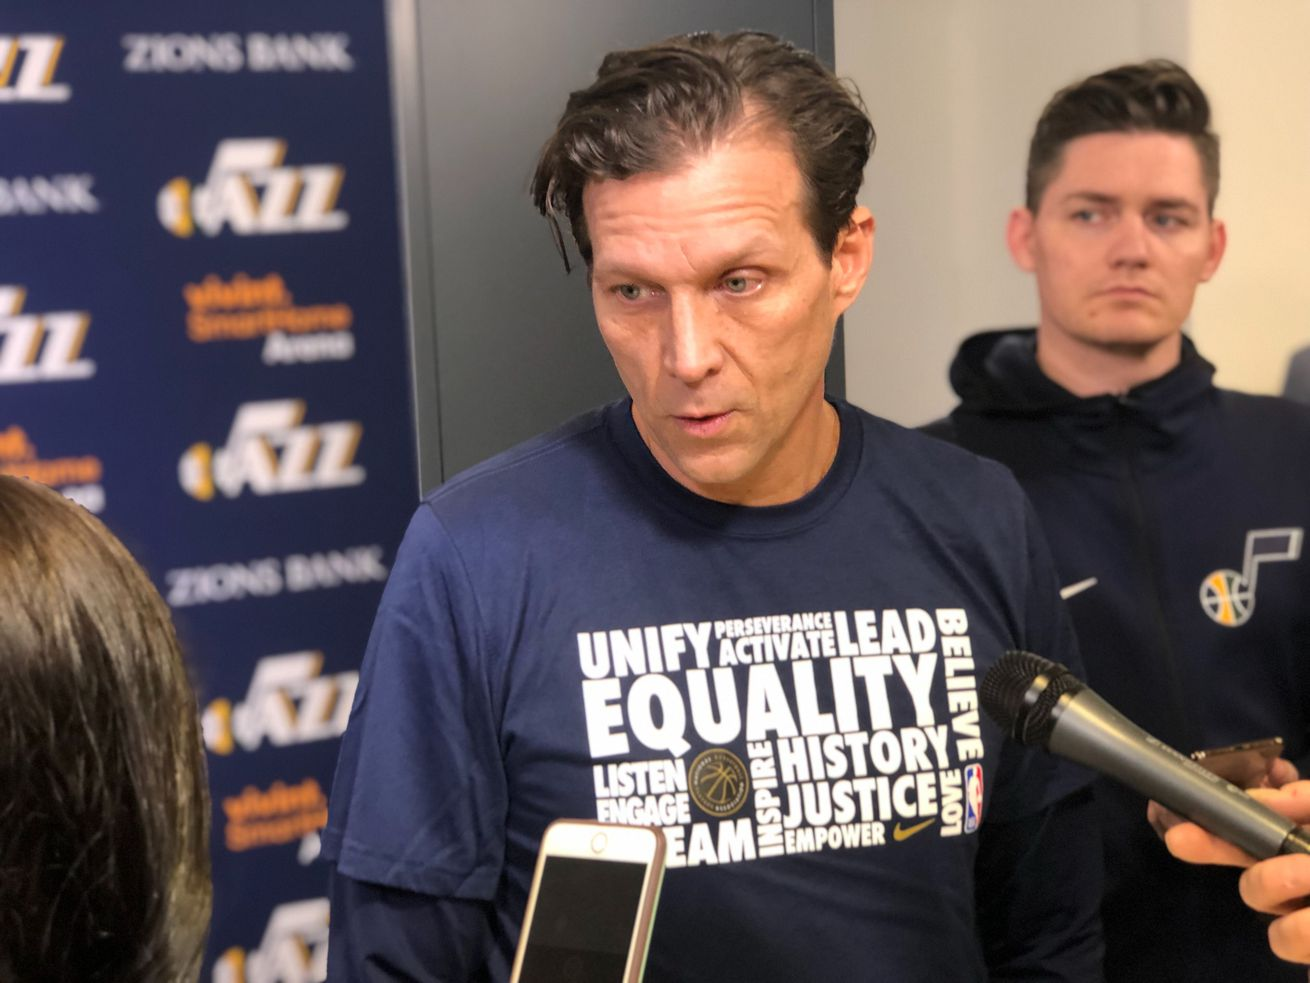 Utah Jazz head coach Quin Snyder emphasizes need to 'be nimble' in Orlando